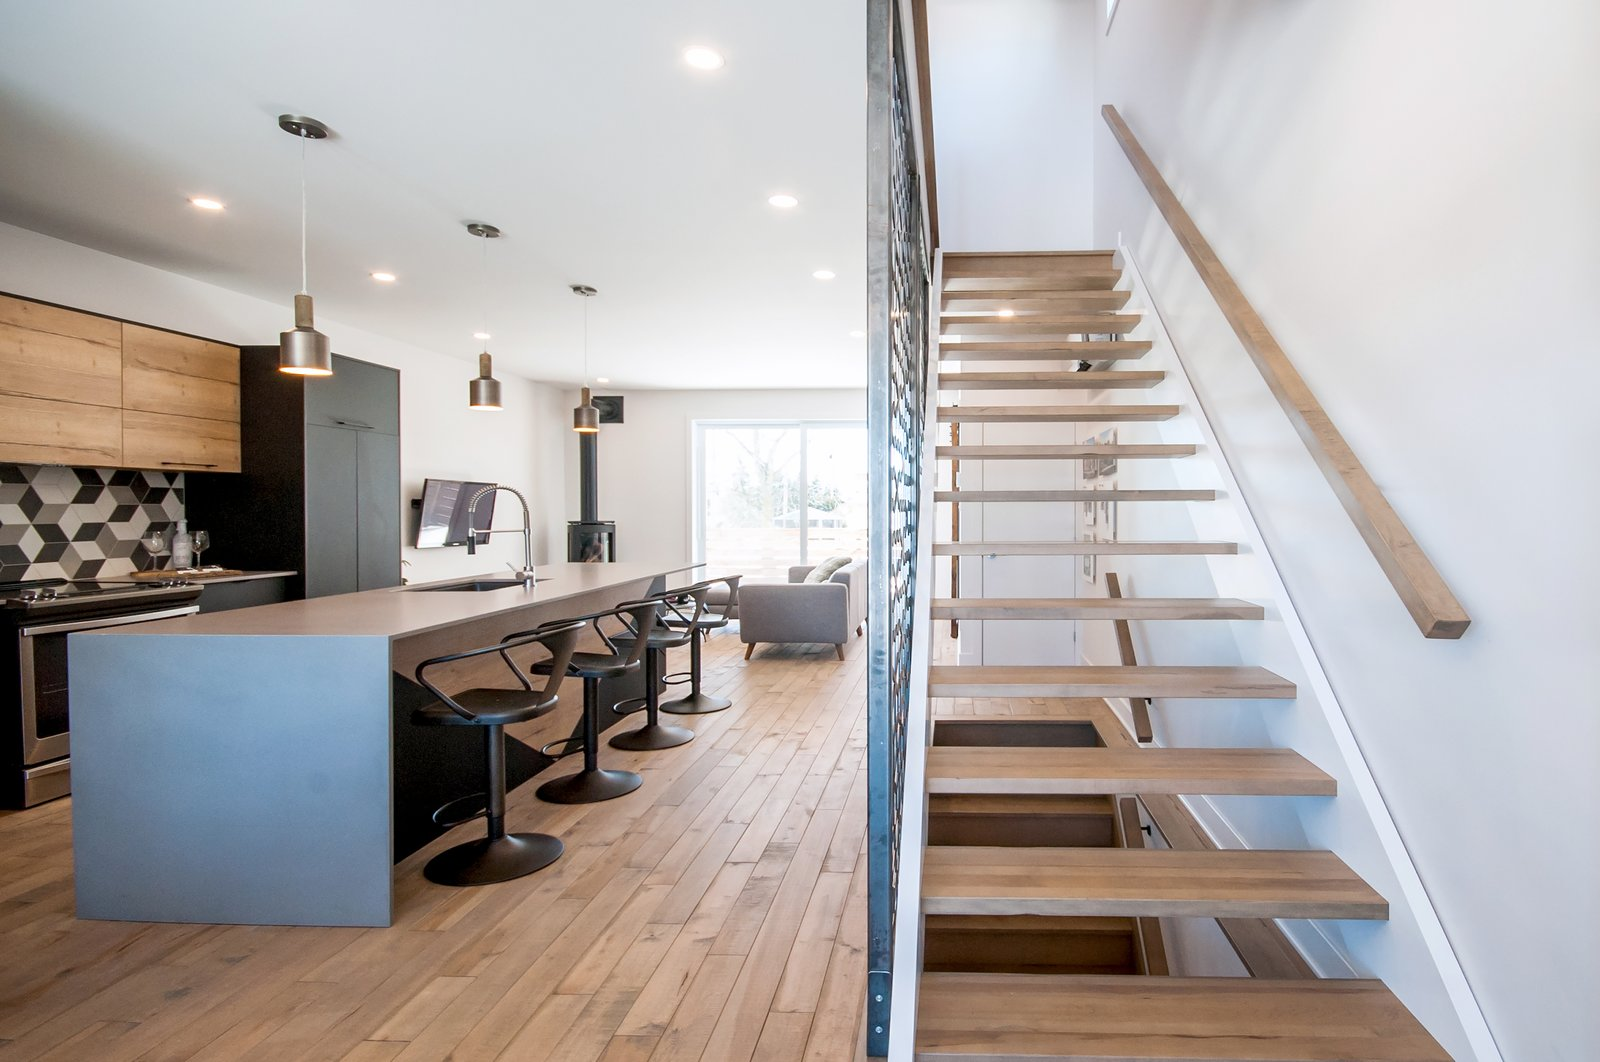 Open concept and good view of the staircase with custom made steel walls  Concept DUB House by Concept Dub